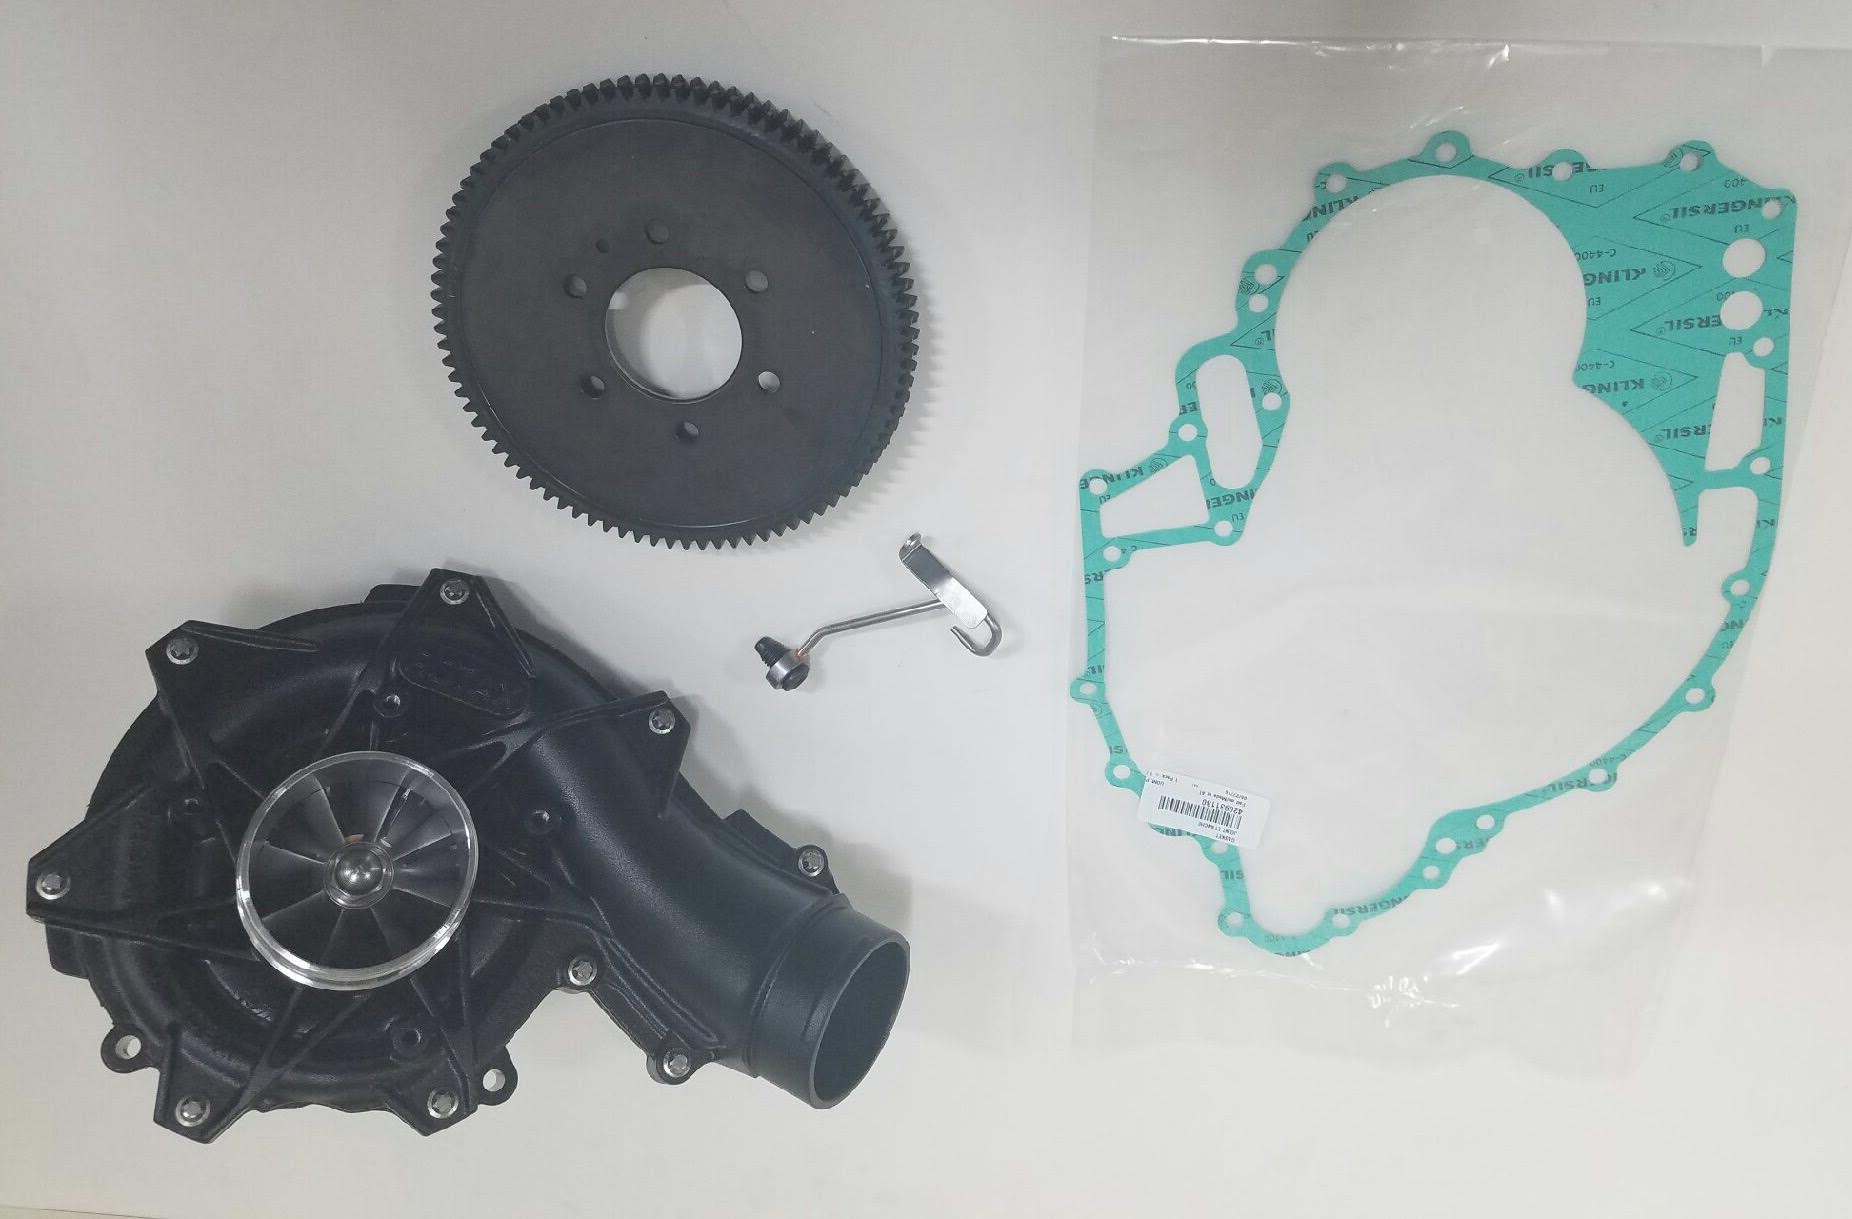 RIVA 300 XXX Supercharger conversion kit for older skis